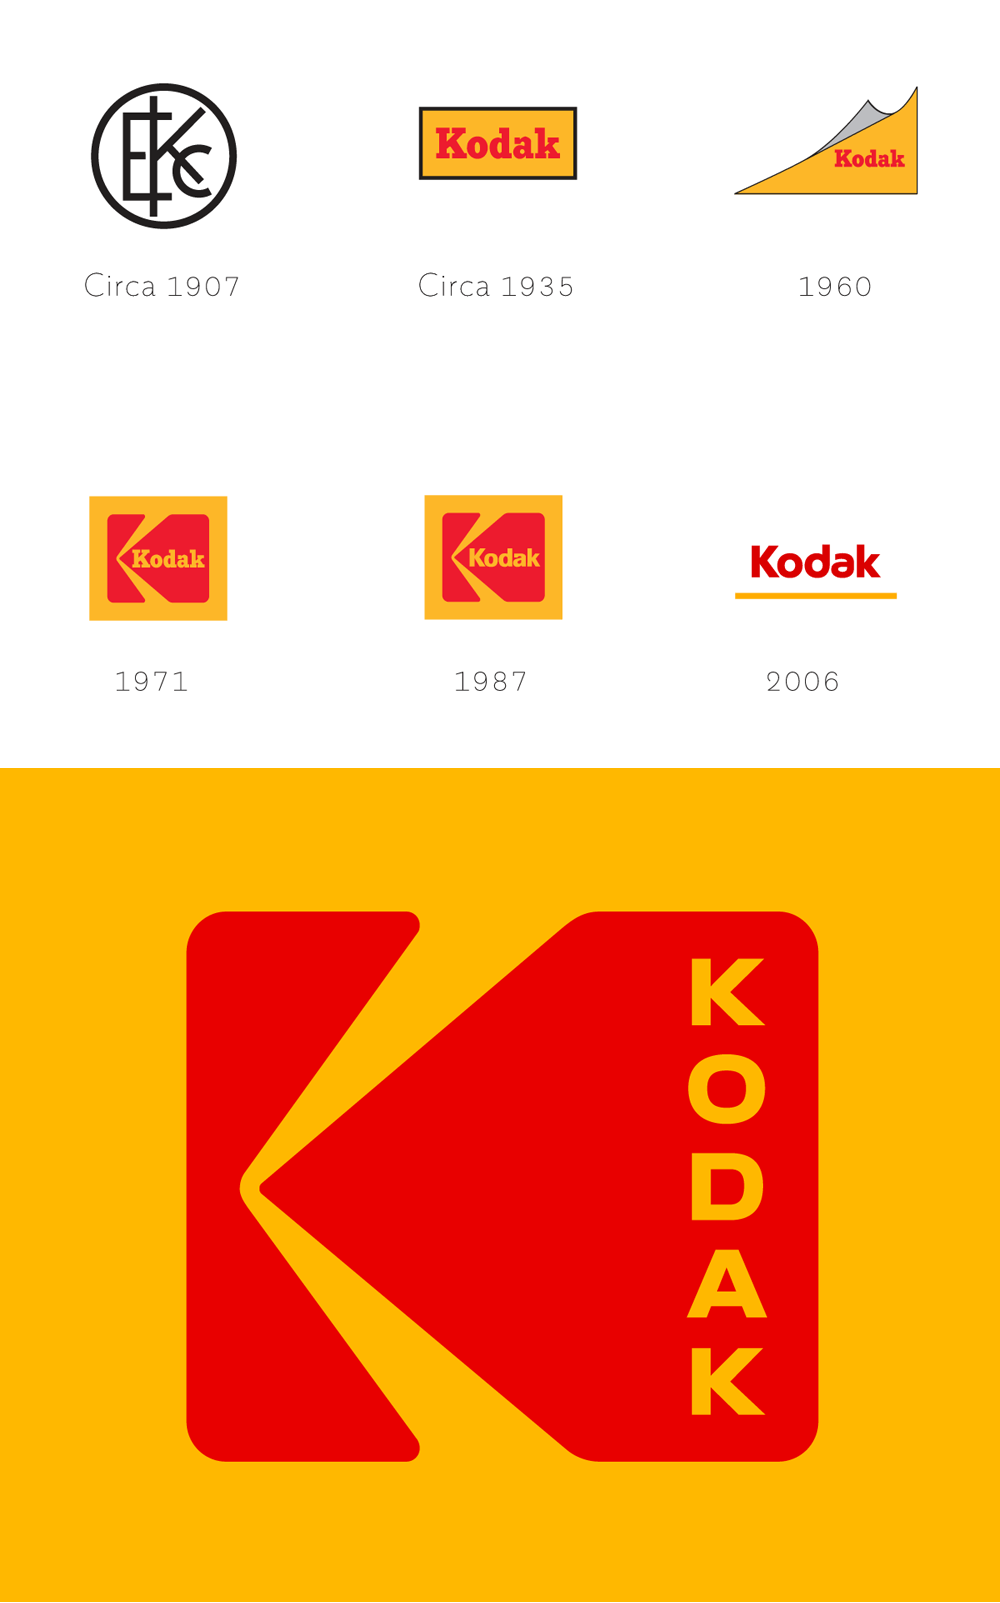 racidal change kodak Racidal change kodak radical change in kodak this essay is supposed to examine the change context and the strategic changes implemented by mr antonio perez,.